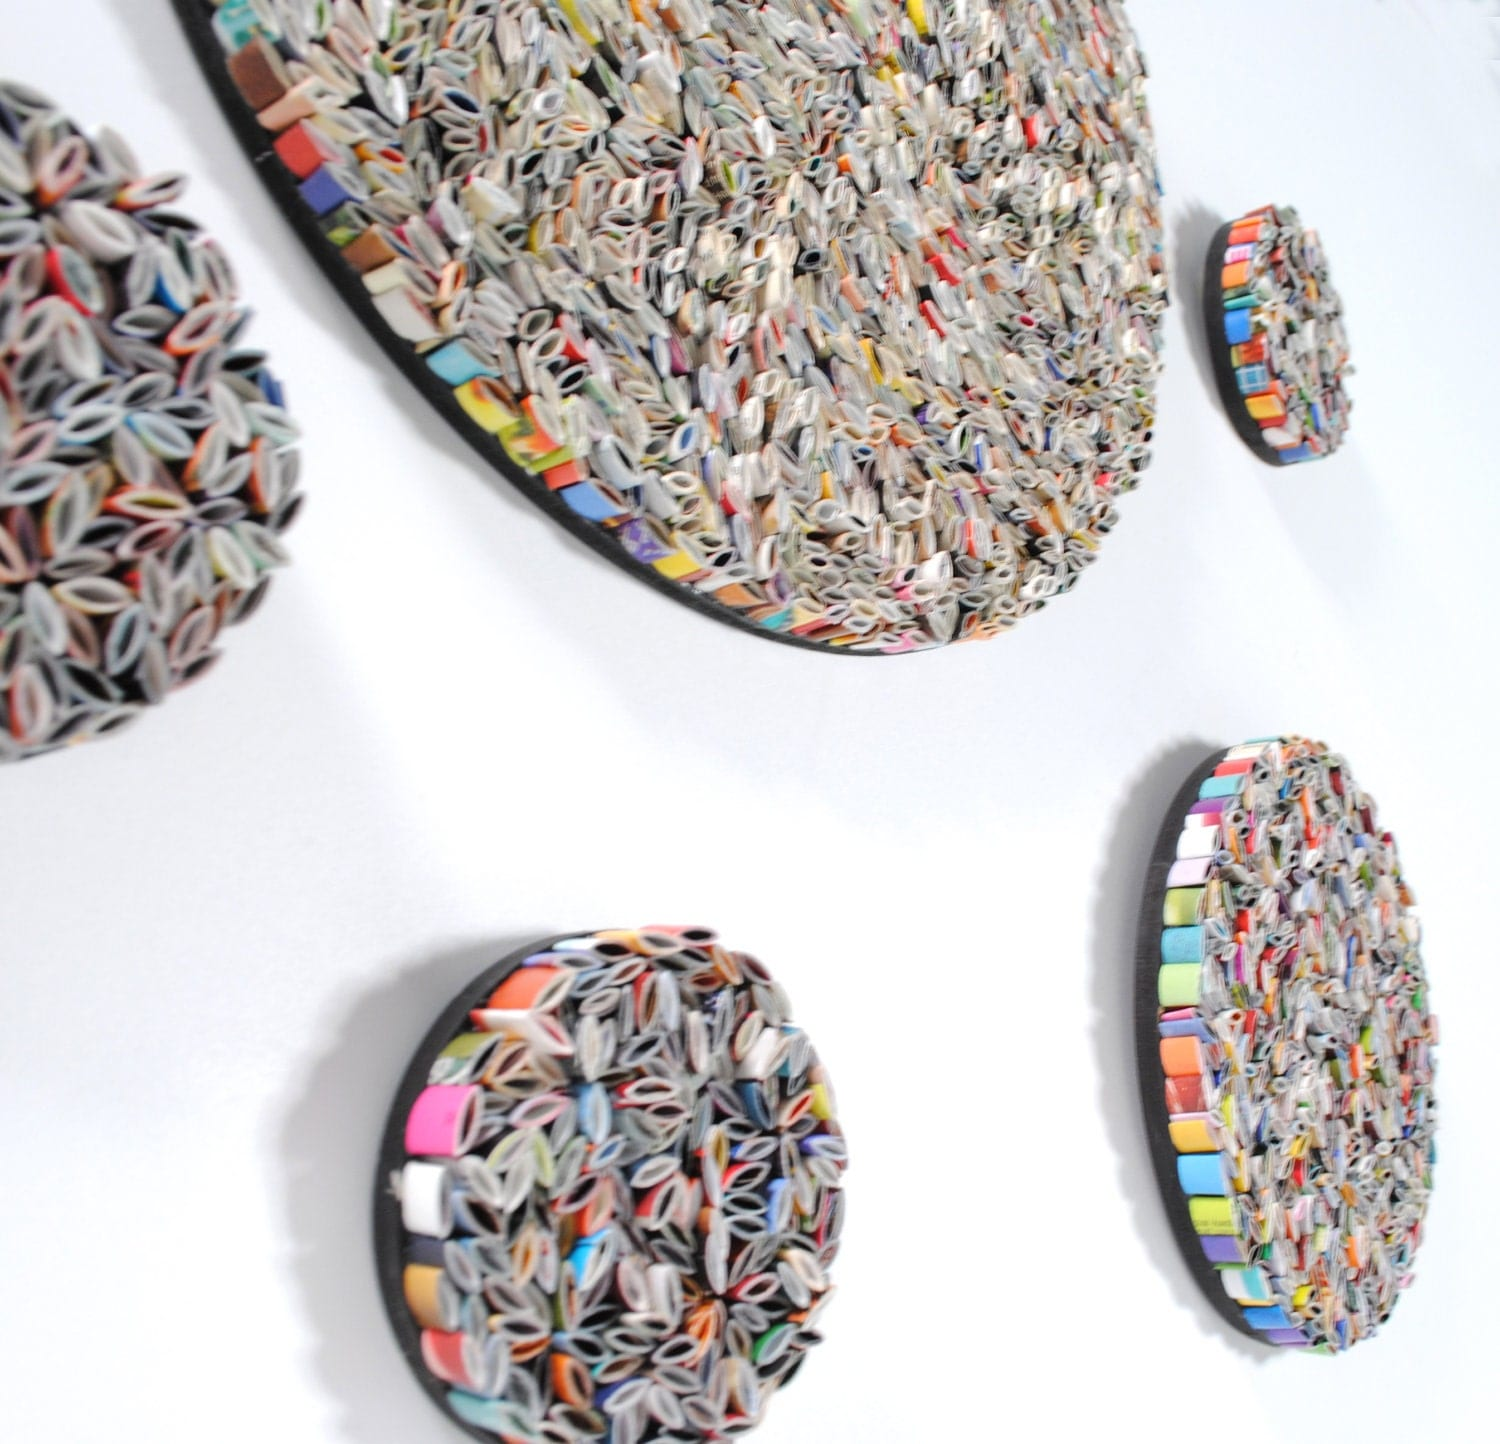 set of 5 round wall art- made from recycled magazines, colorful